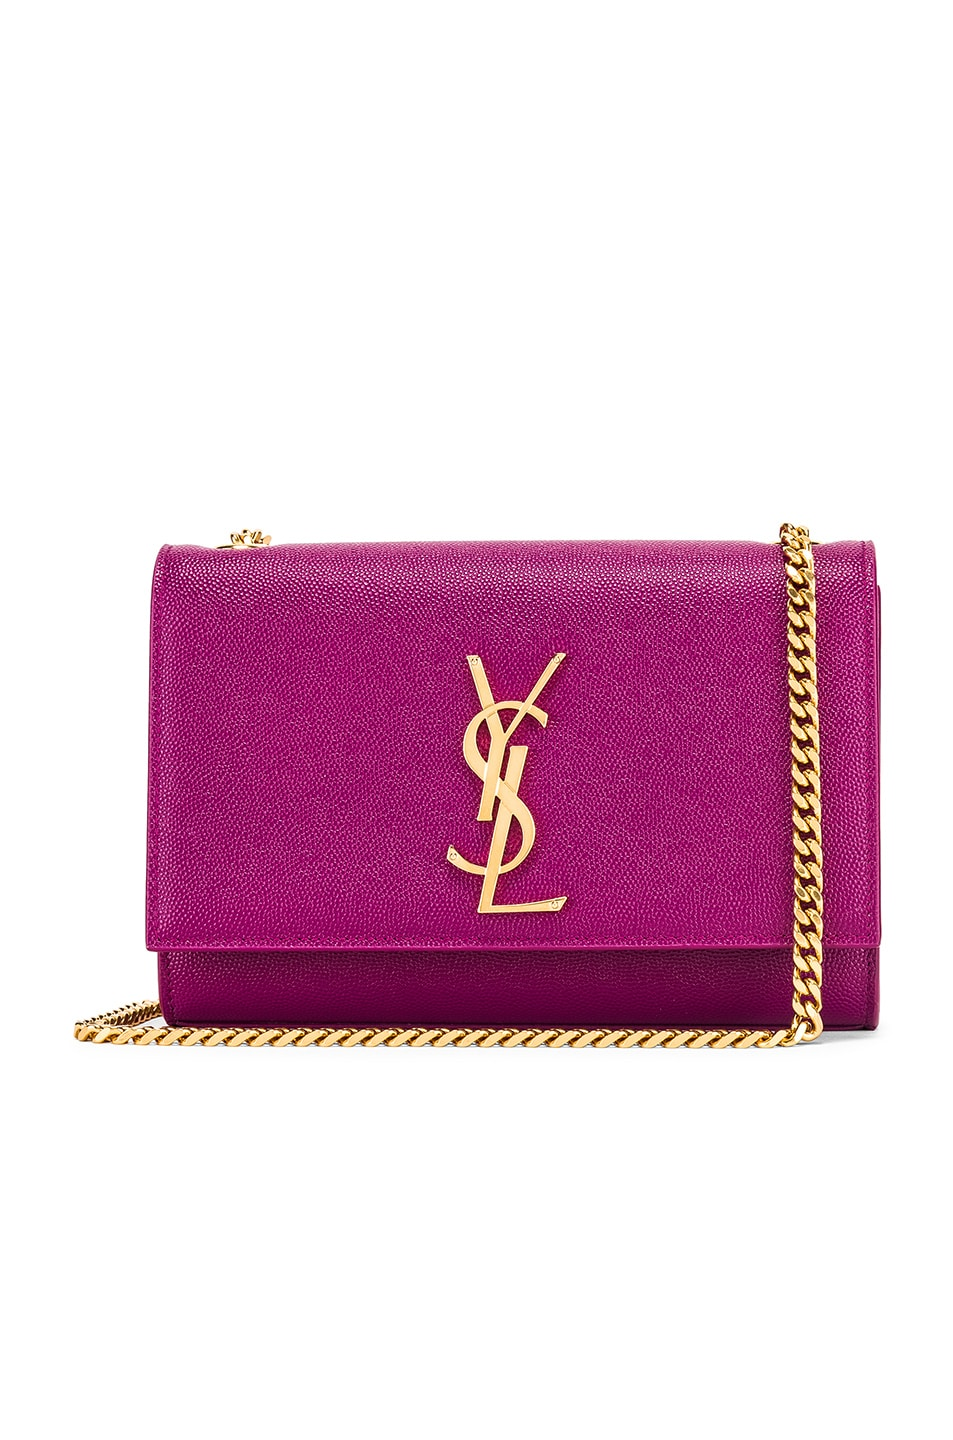 Image 1 of Saint Laurent Small Kate Monogramme Chain Bag in Light Grape